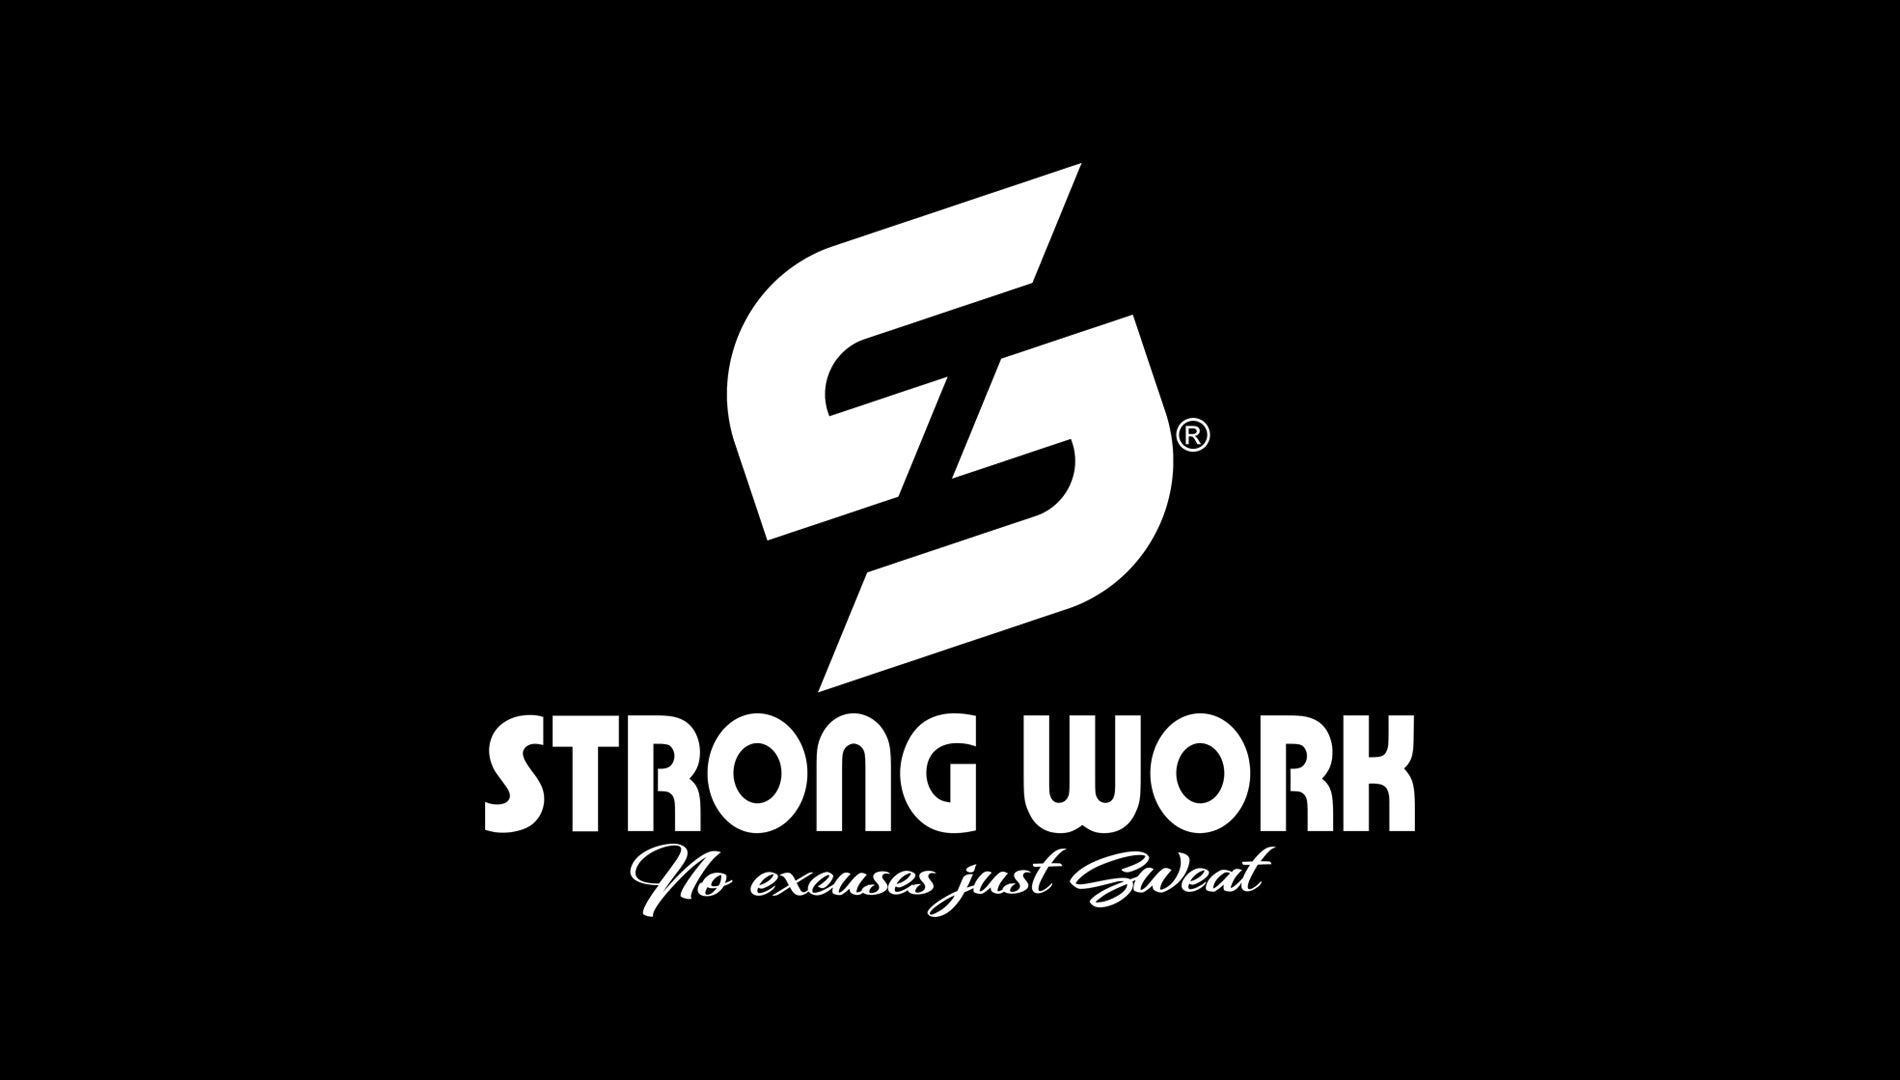 AFFILIATION STRONG WORK